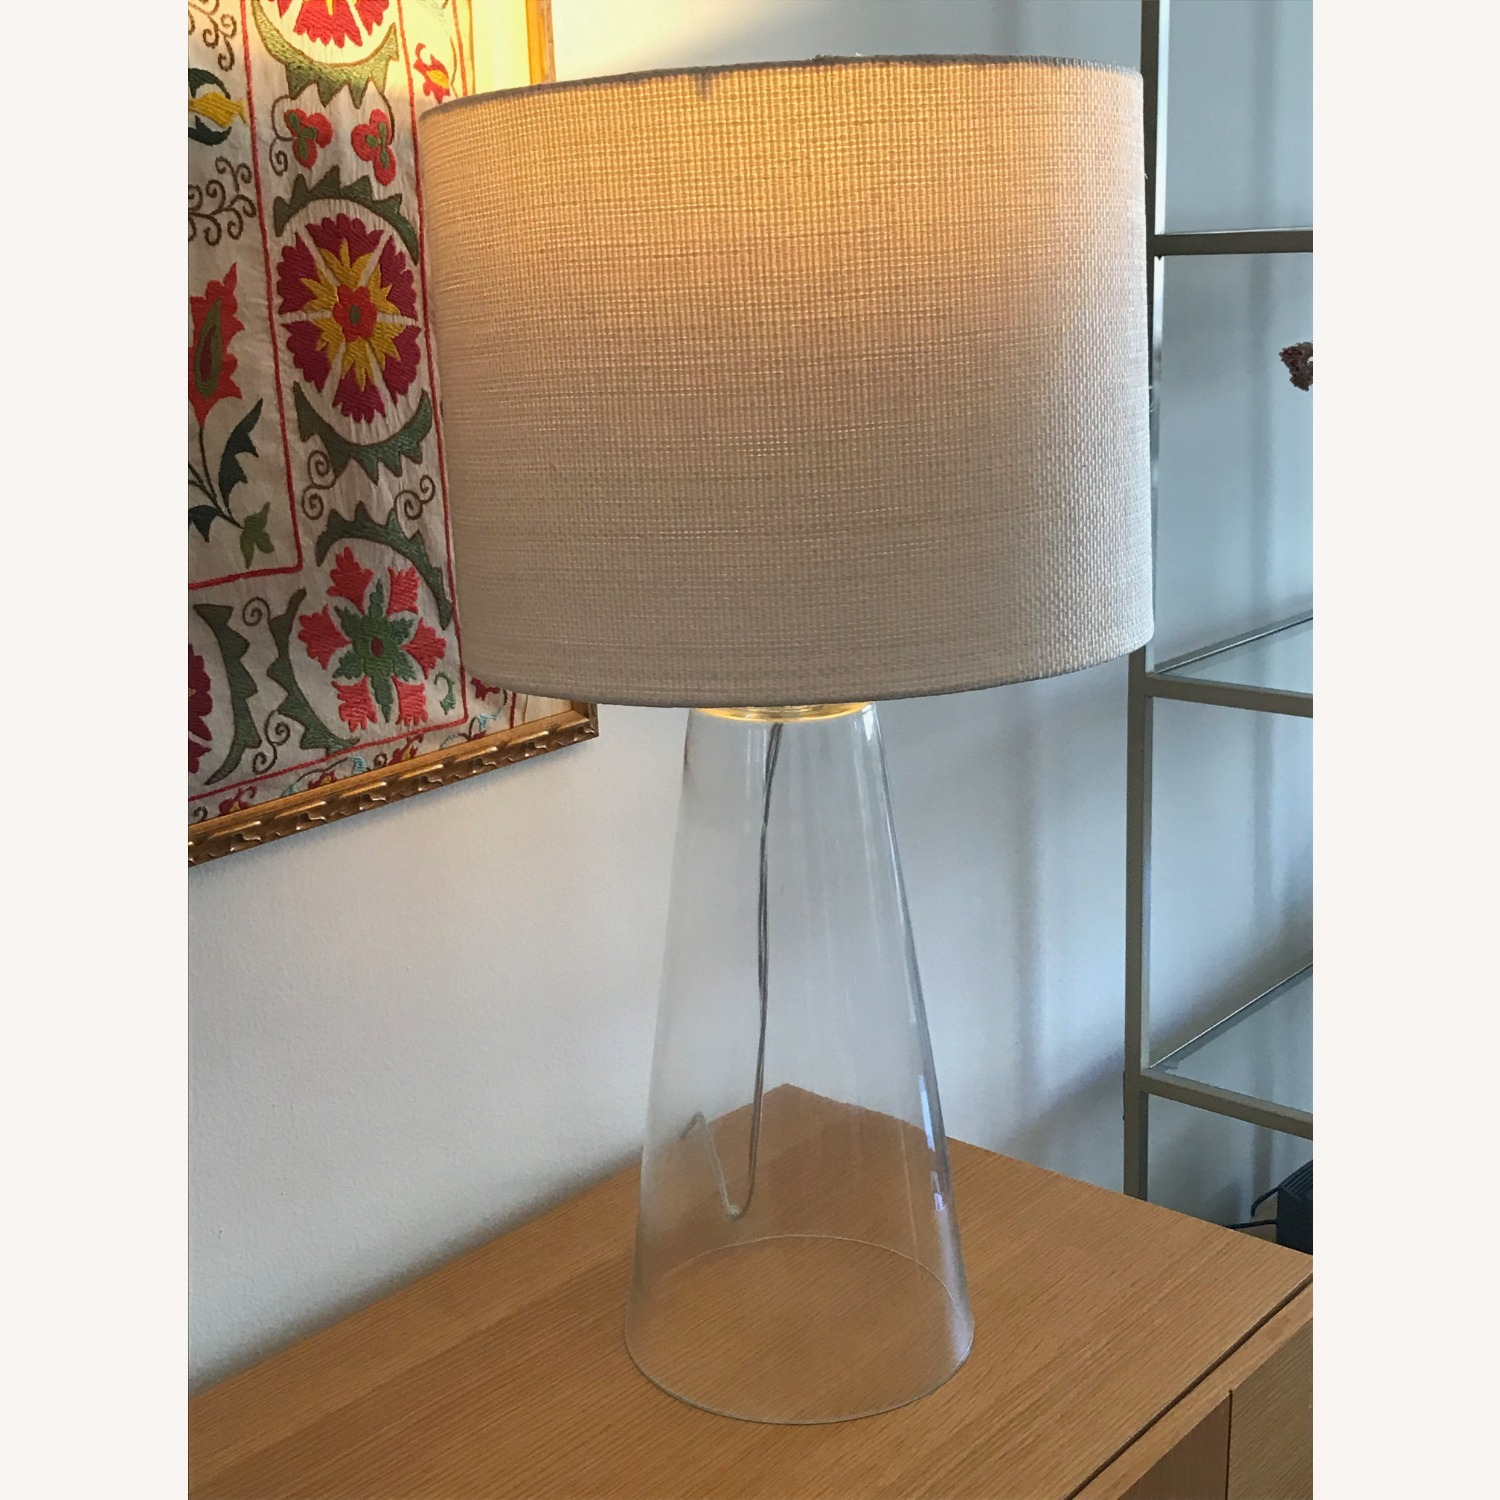 Glass Table Lamp with White Shade - image-1